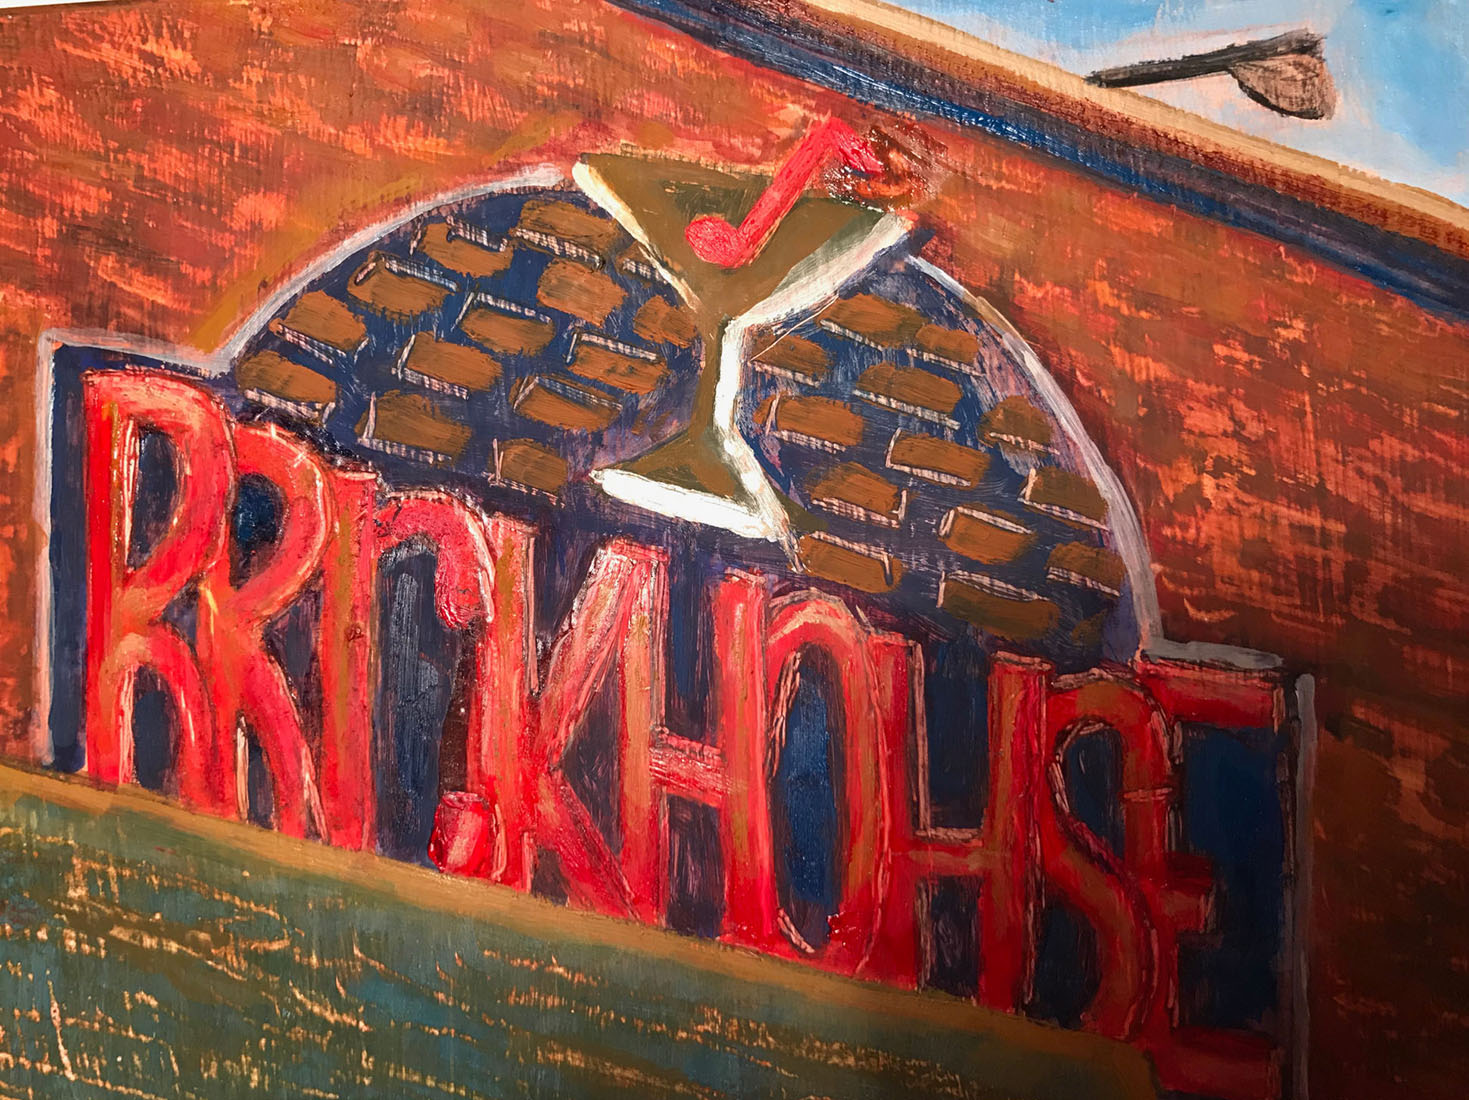 Kim Tennant Painting: Tiny Treasures - Brickhouse